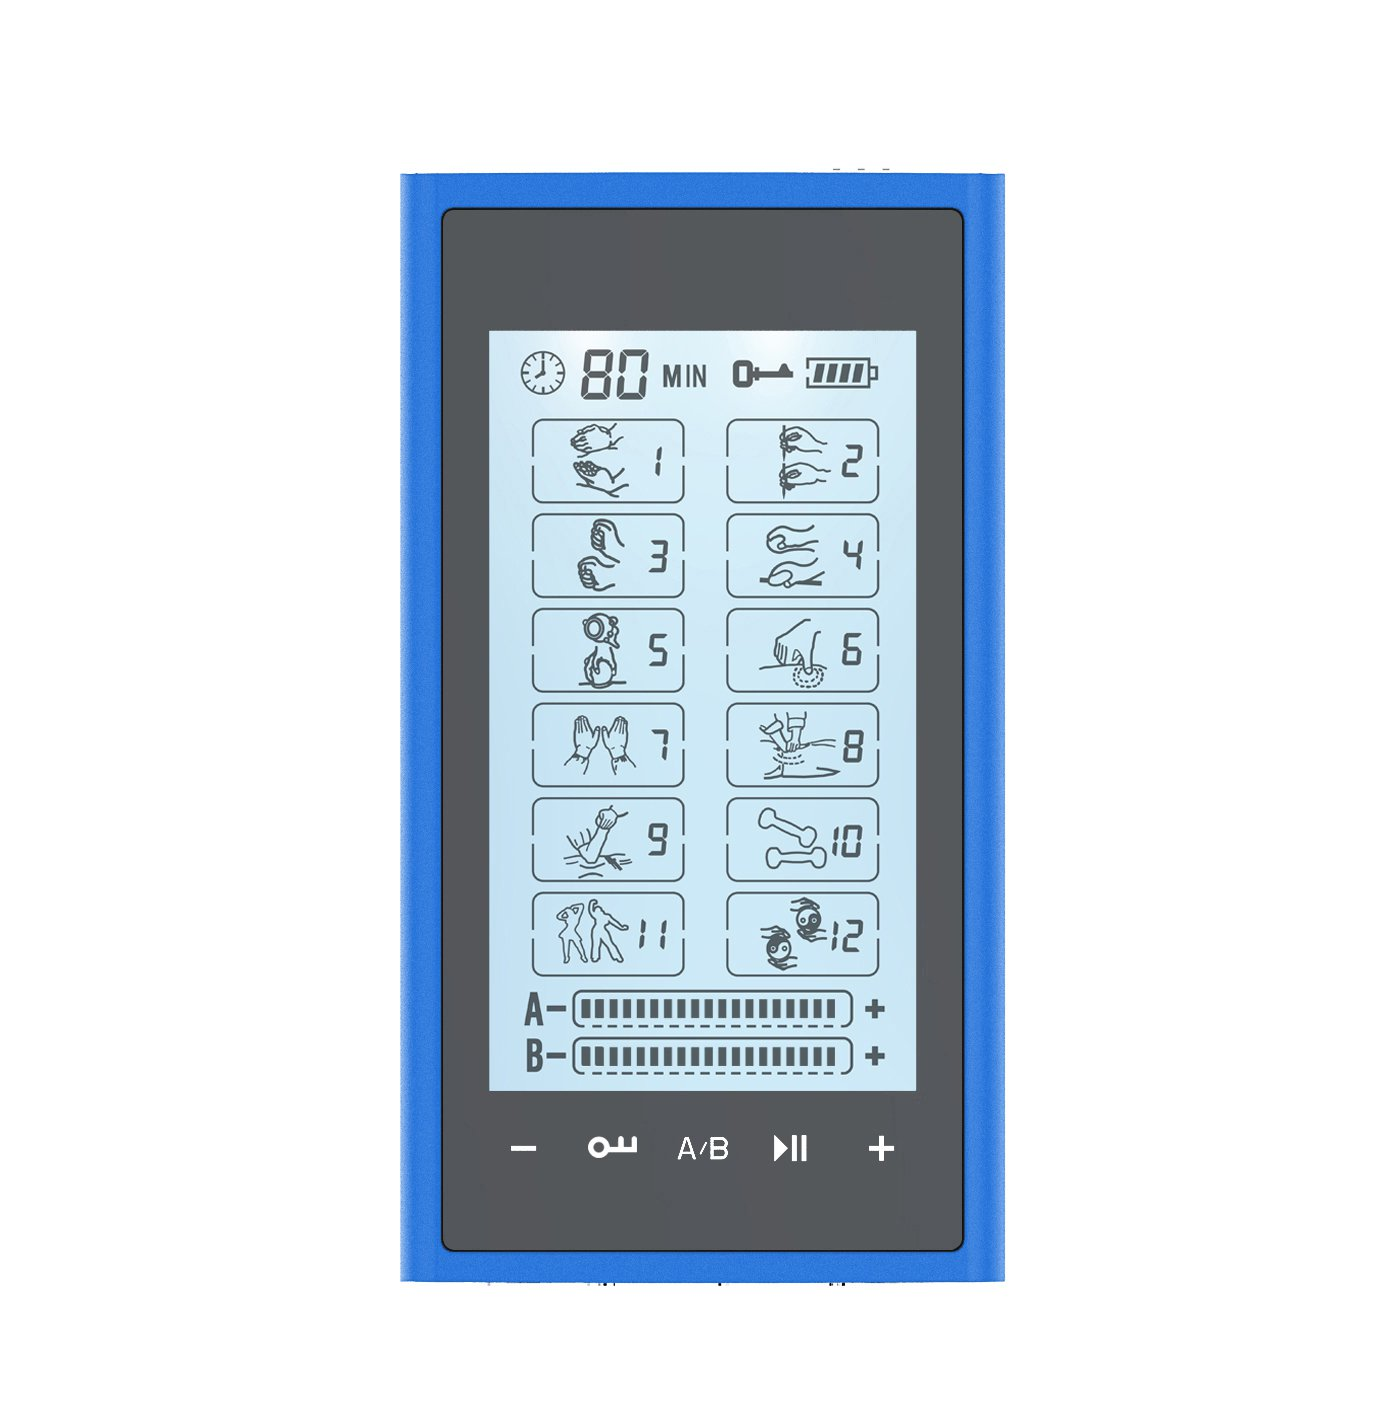 T12AB2 HealthmateForever TENS Unit Electrical Muscle Stimulator Blue in Black + 10 Pairs of Pads